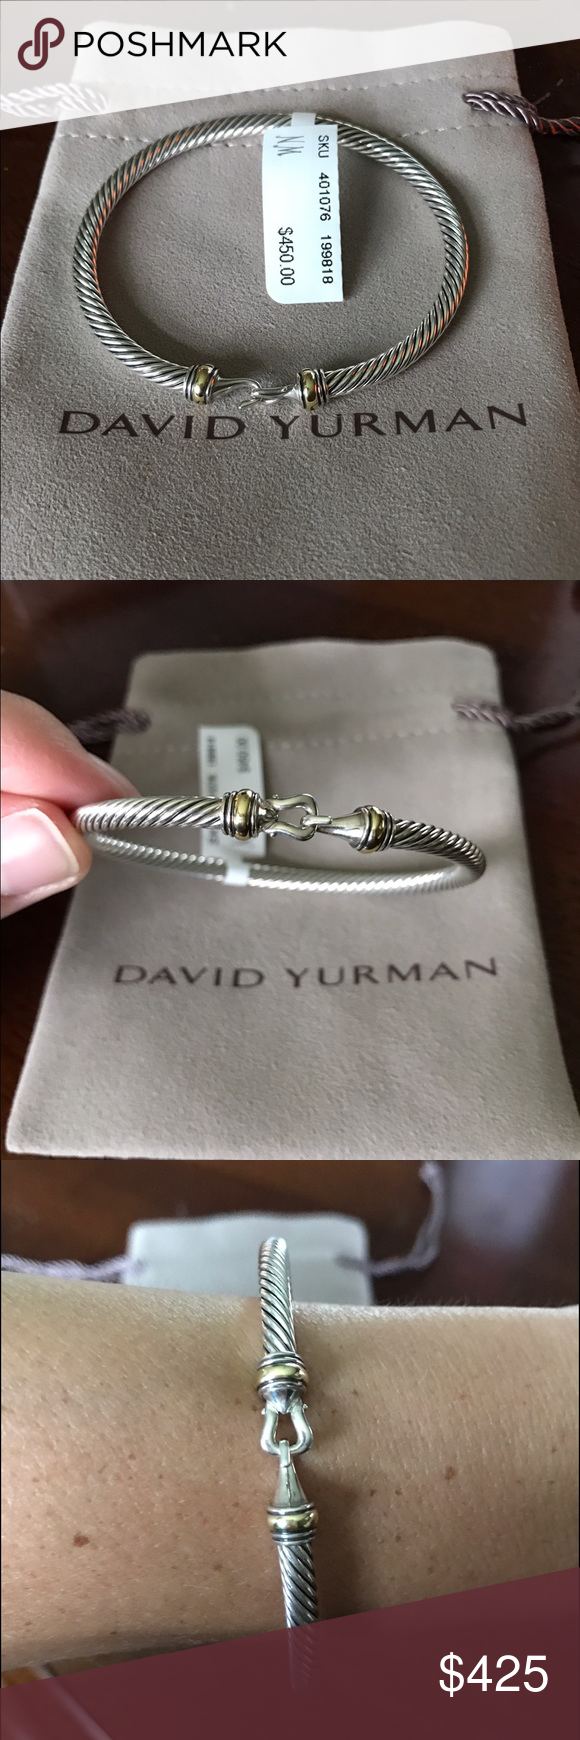 NWT David Yurman 4mm buckle bracelet Medium This has tags still attached from NM. Retail $450 buckle bracelet. Comes with original pouch and NM box. The size is 4mm and Medium. Two tone silver and gold. Contact to make offer - cheaper through PayPal! Also welcoming trades for size Small DY cable bracelets (this medium is a bit large for me and I cannot return to store). David Yurman Jewelry Bracelets